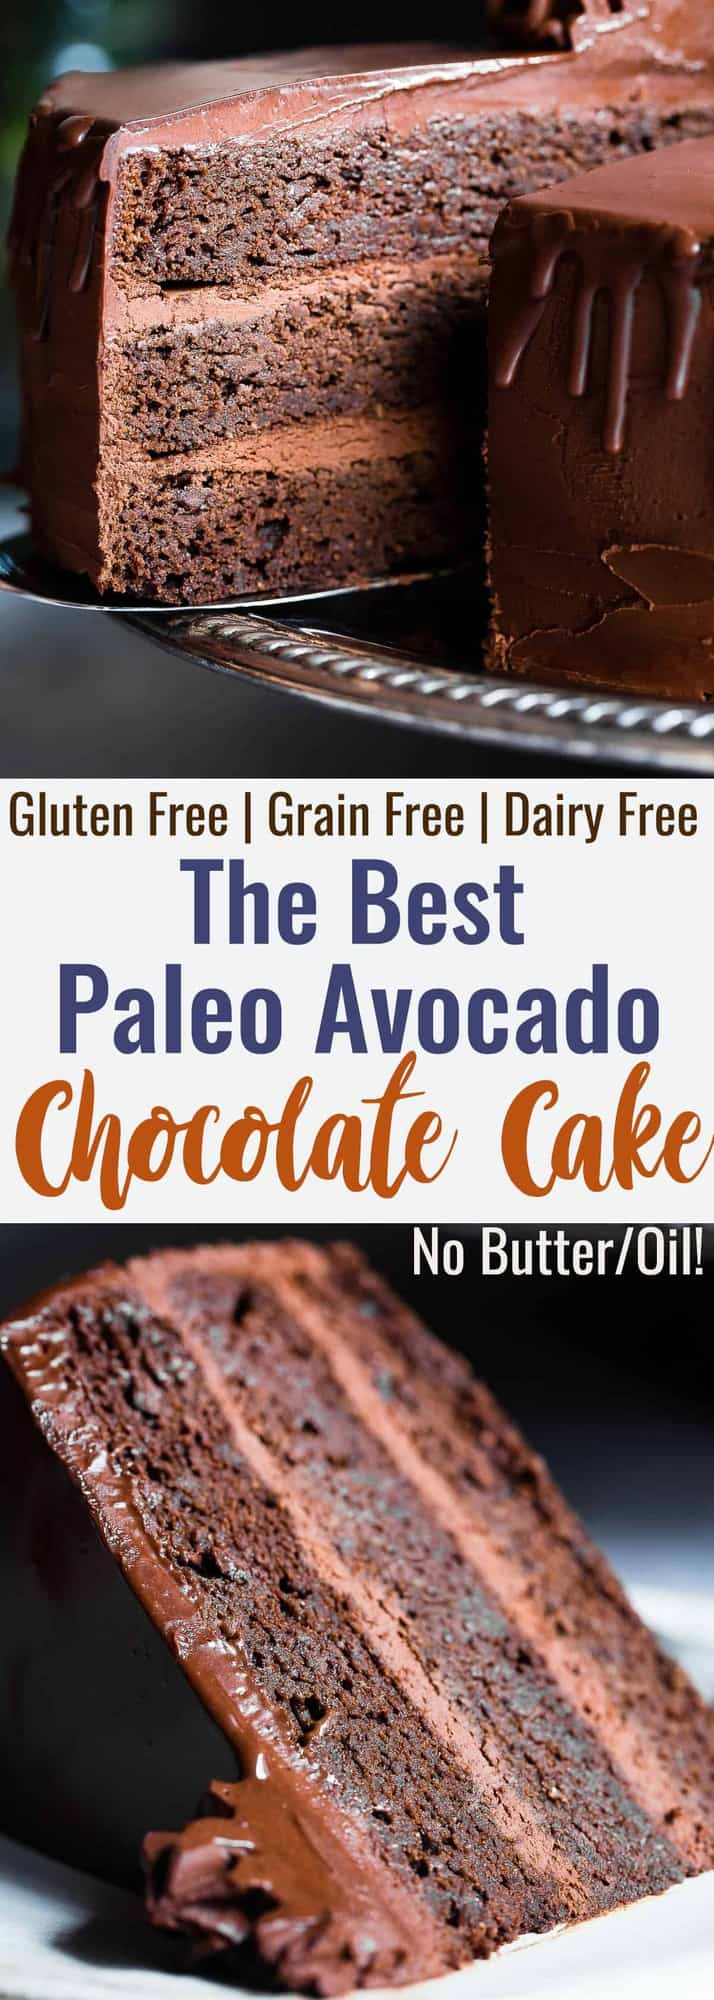 The Best Paleo Chocolate Avocado Cake -This dairy and gluten free Chocolate cake is SO fluffy and moist you'll never believe it's butter/oil free and made with avocado! The BEST healthy chocolate cake you will ever have! | #Foodfaithfitness | #Paleo #Grainfree #Dairyfree #Healthy #cake